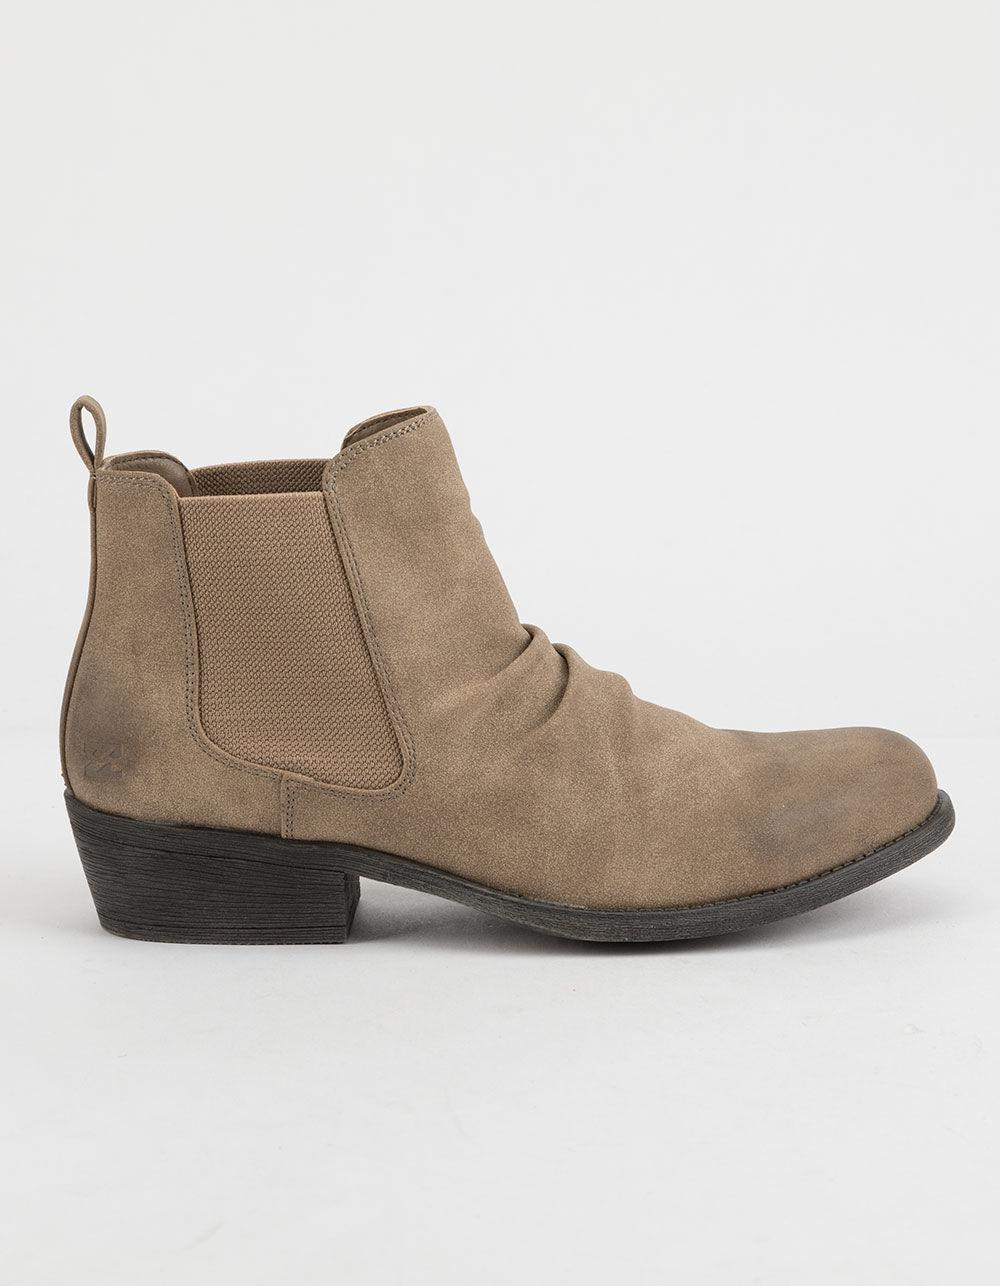 Lyst - Billabong Sweet Surrender Ankle Boot in Brown - Save  60.869565217391305% 1158d54b43e6